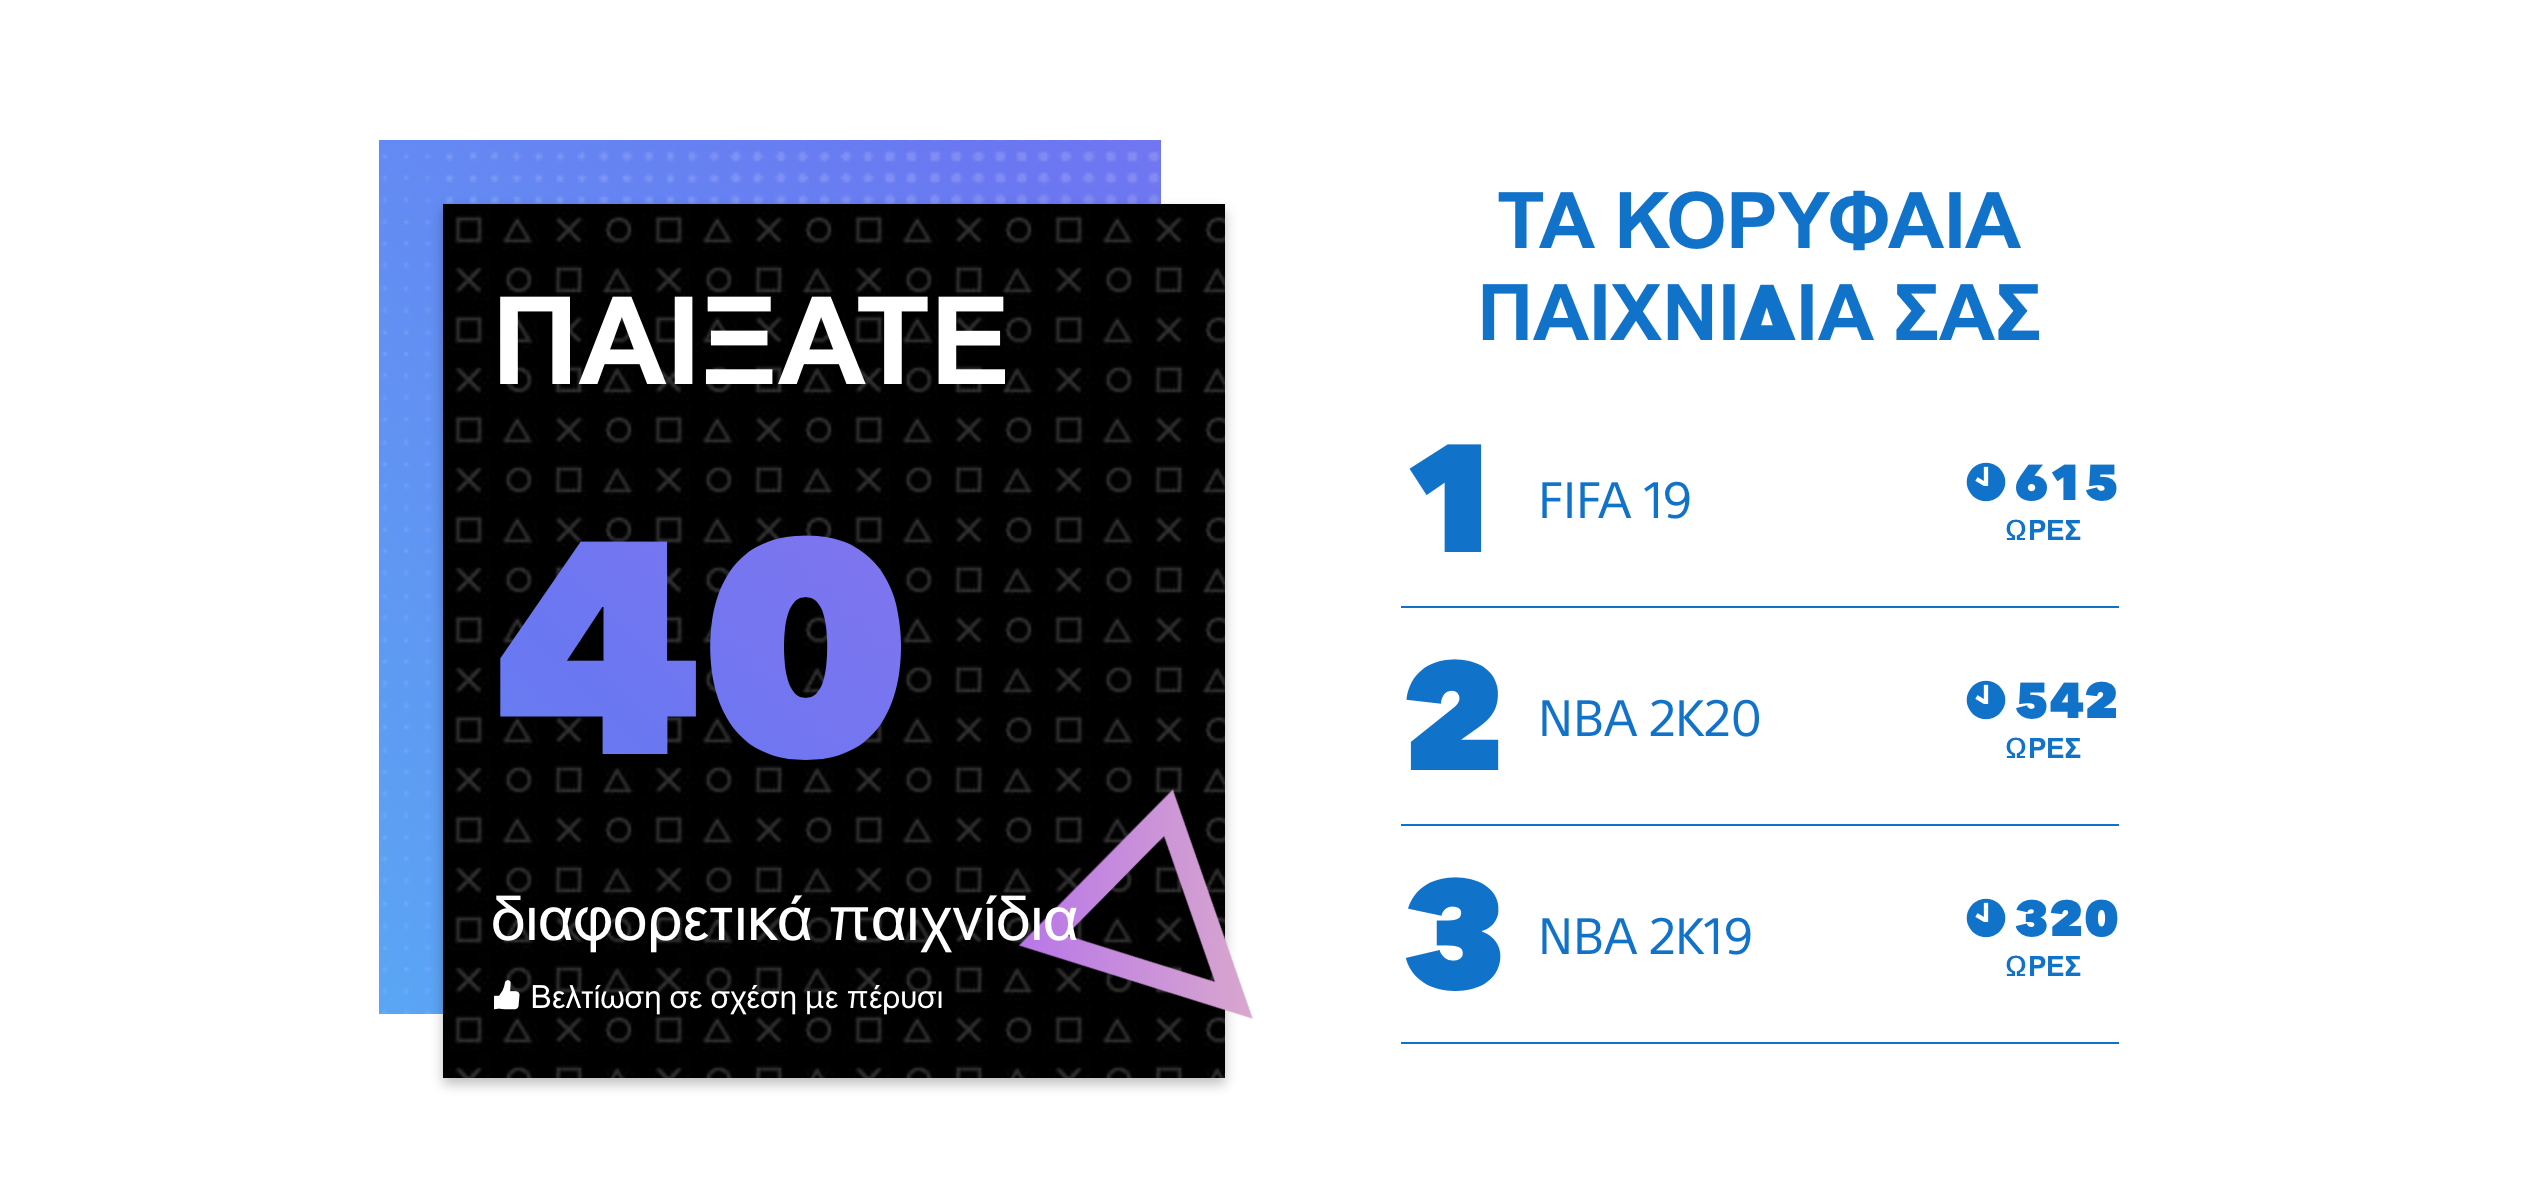 ps4 2019 wrap up